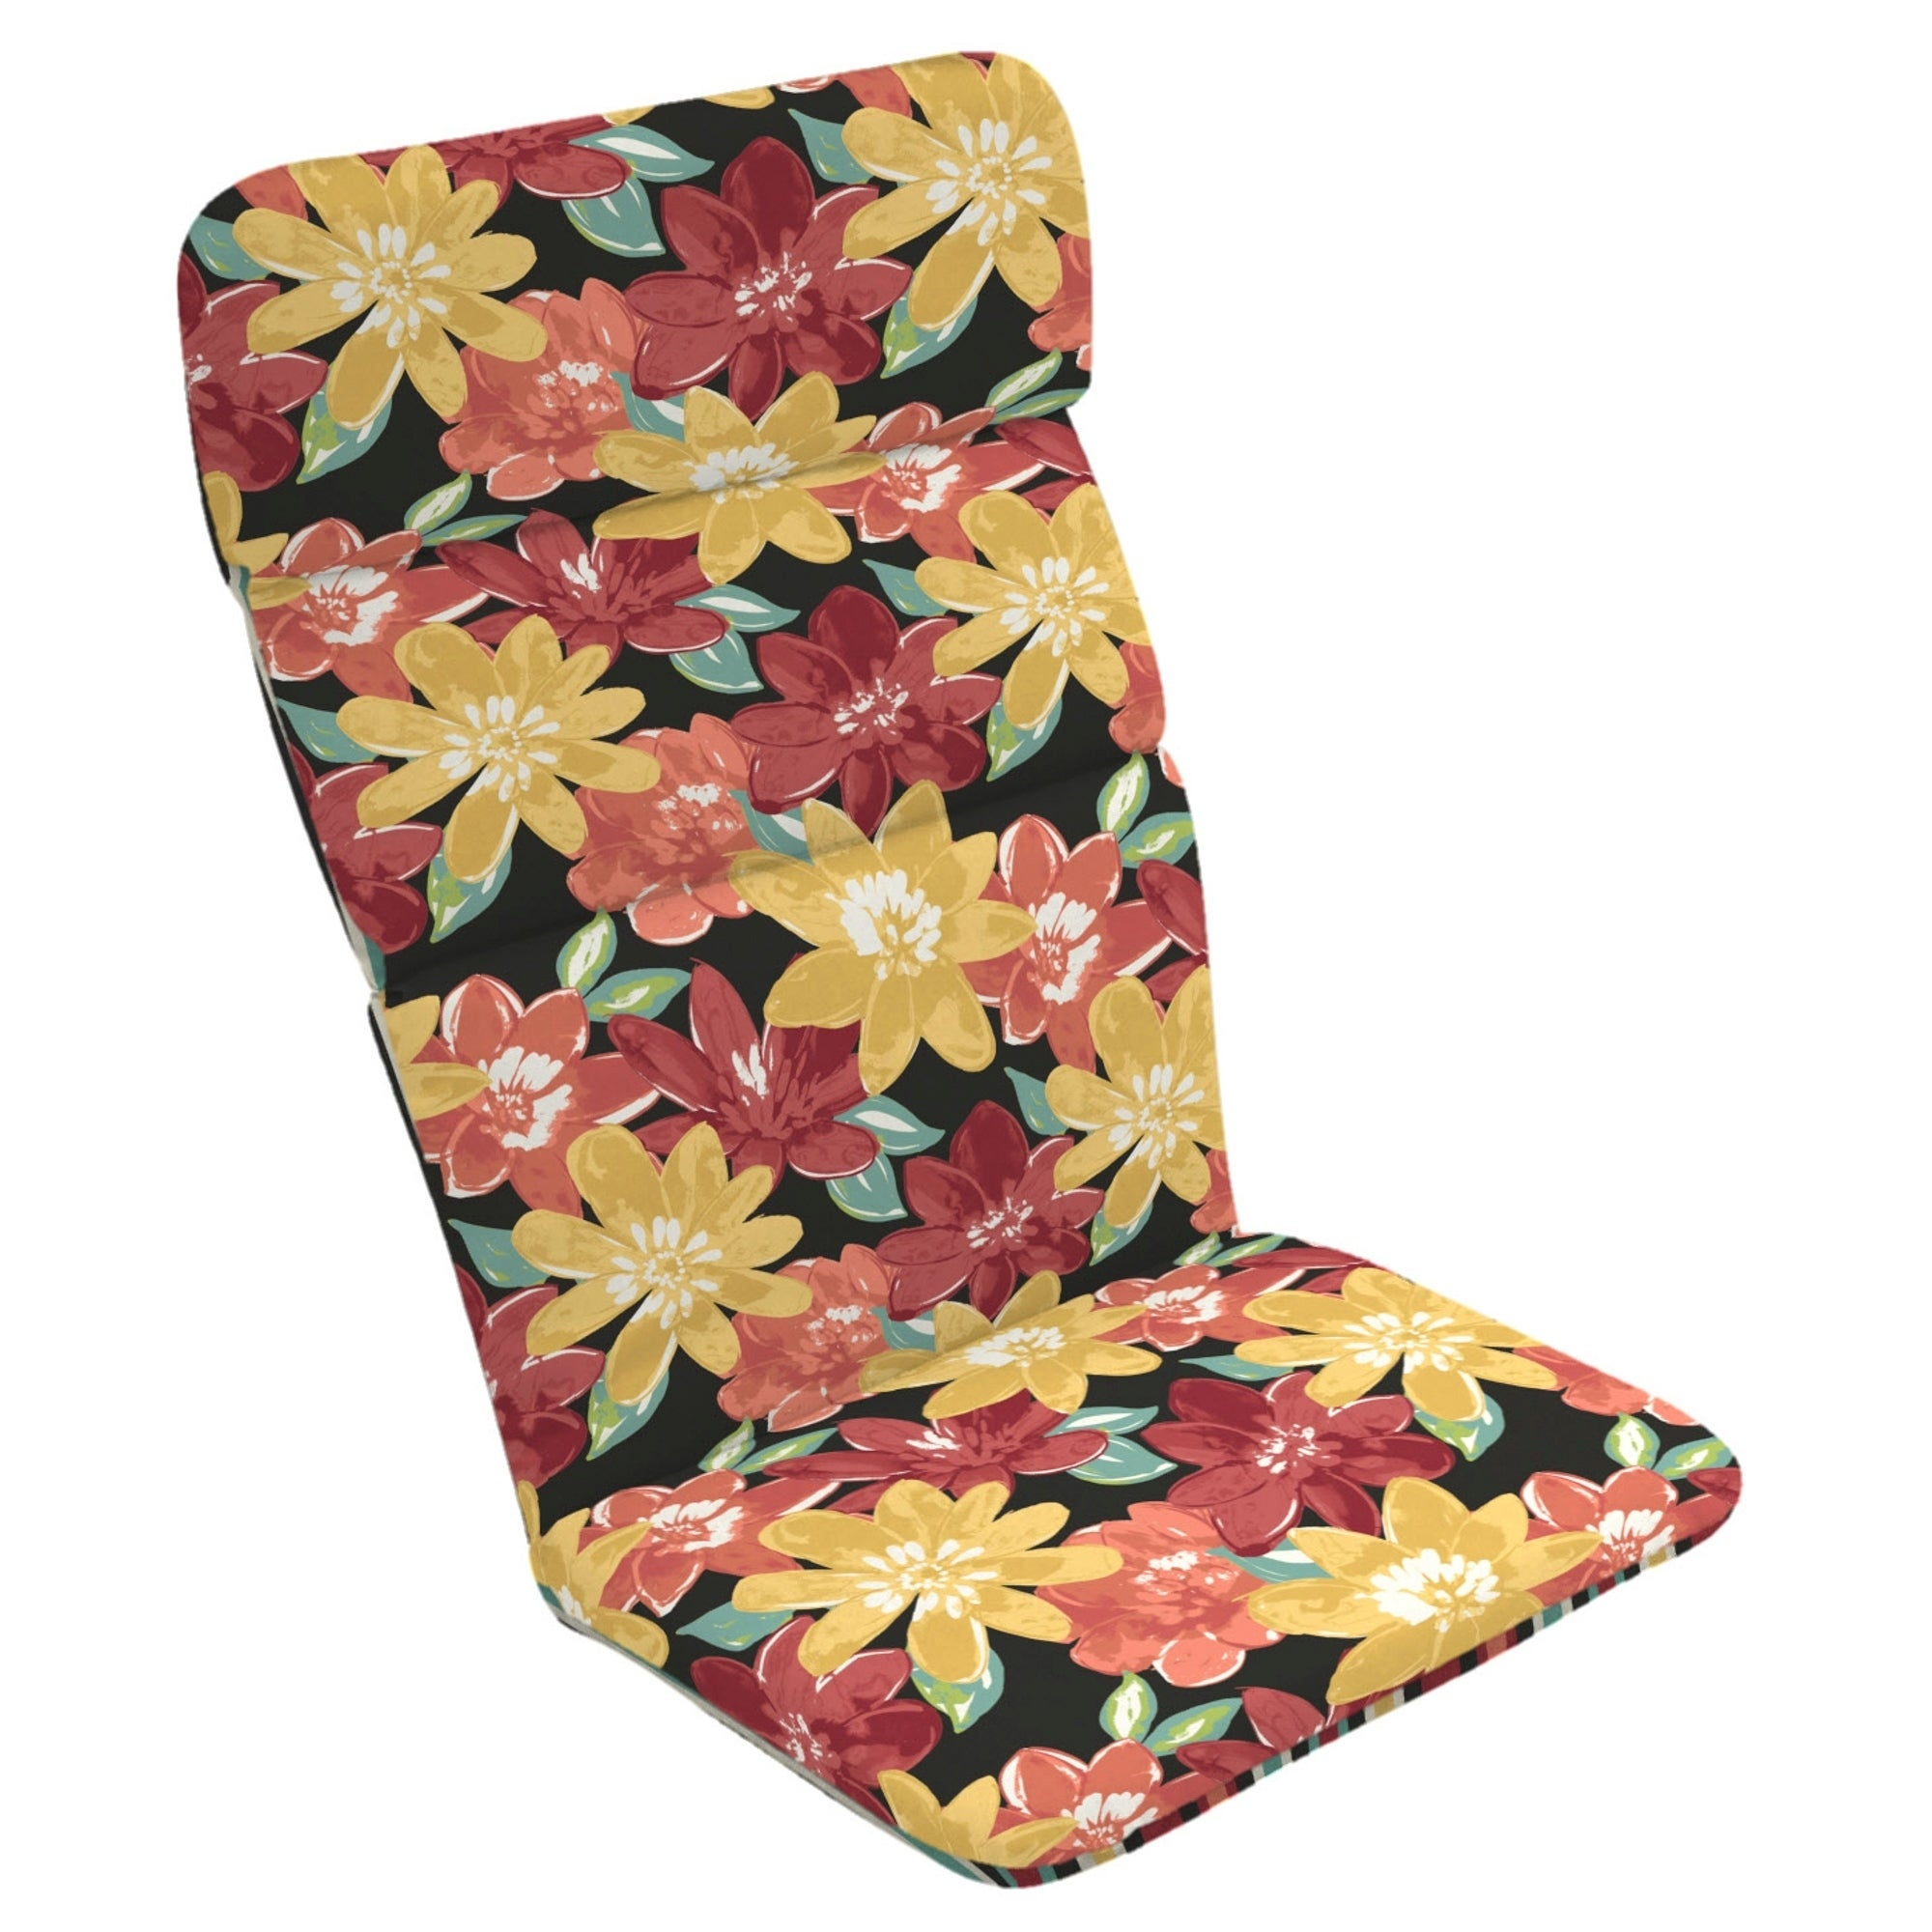 Arden Selections Floral Reversible Outdoor Adirondack Chair Cushion